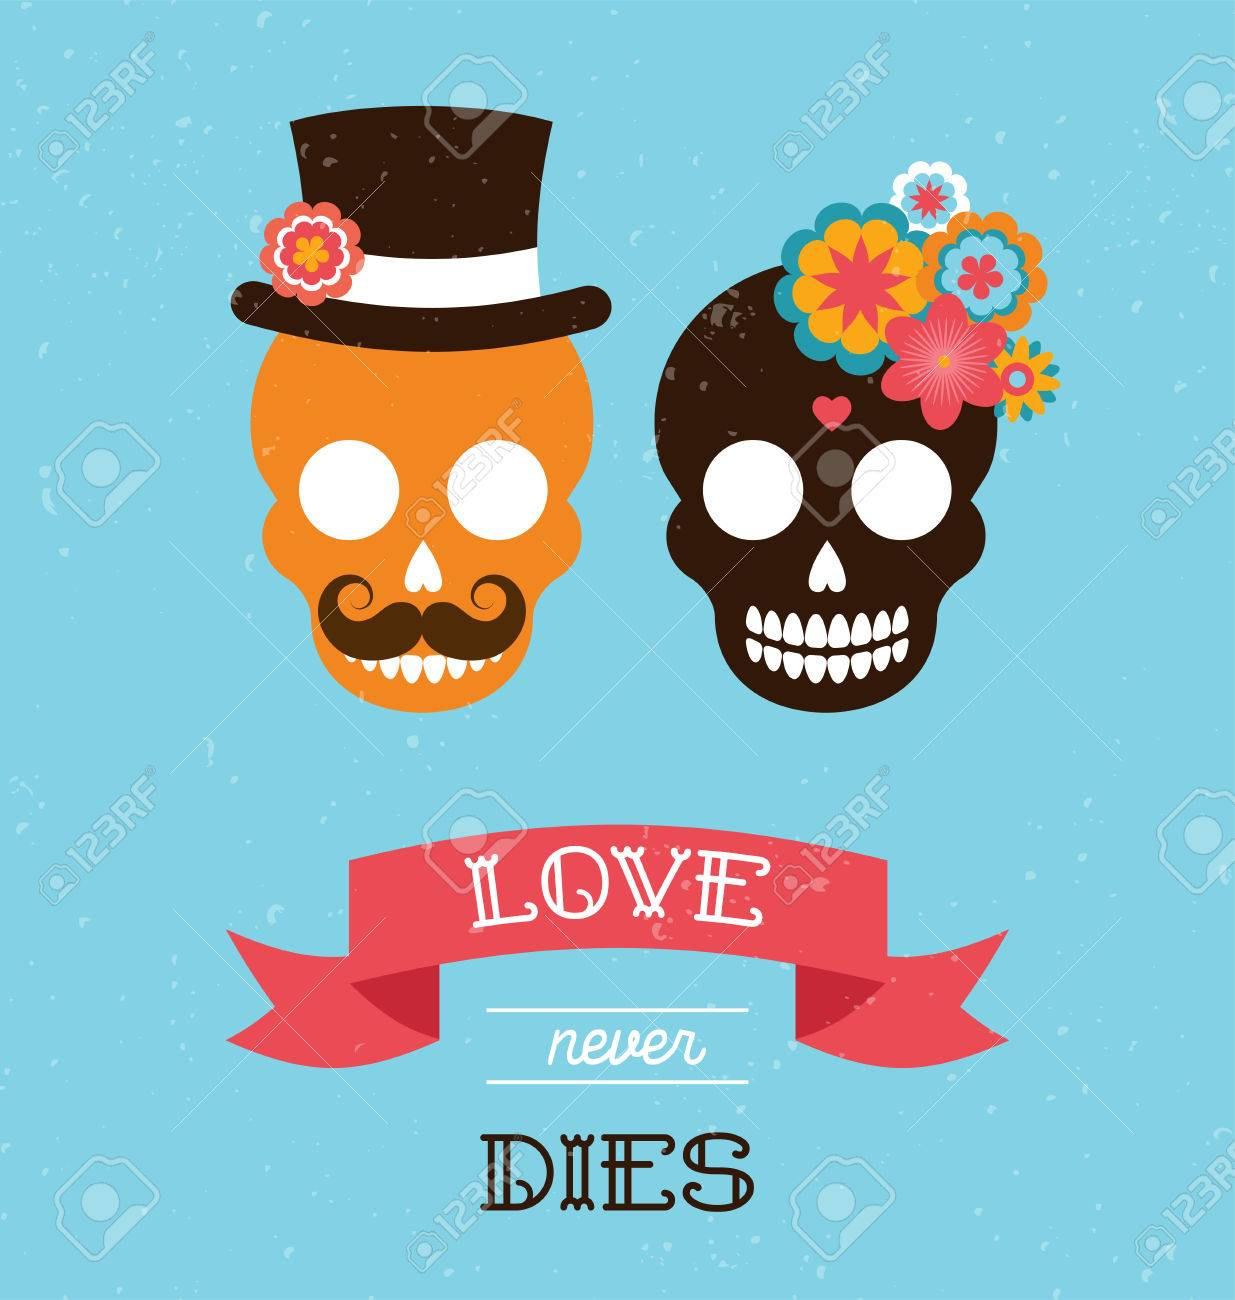 Mexican wedding invitation with two cute hipster skulls royalty free mexican wedding invitation with two cute hipster skulls stock vector 41835680 stopboris Image collections